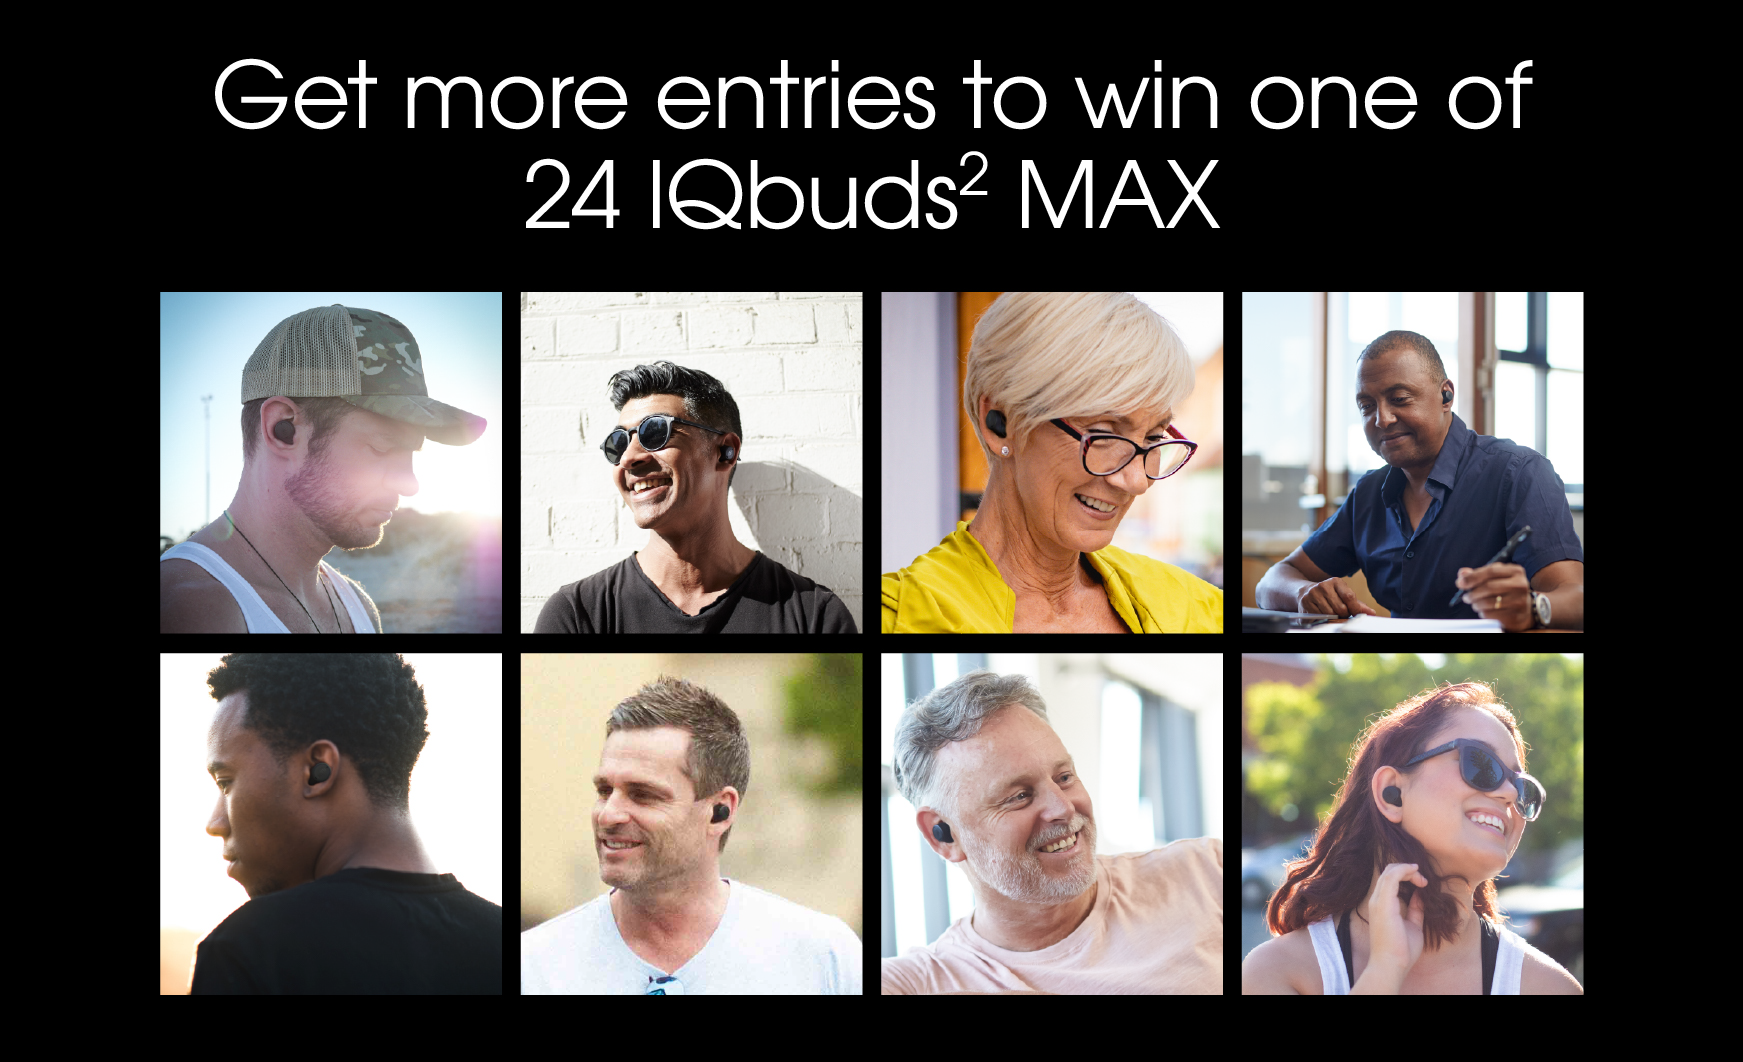 World Hearing Day IQbuds² MAX Giveaway Giveaway Image